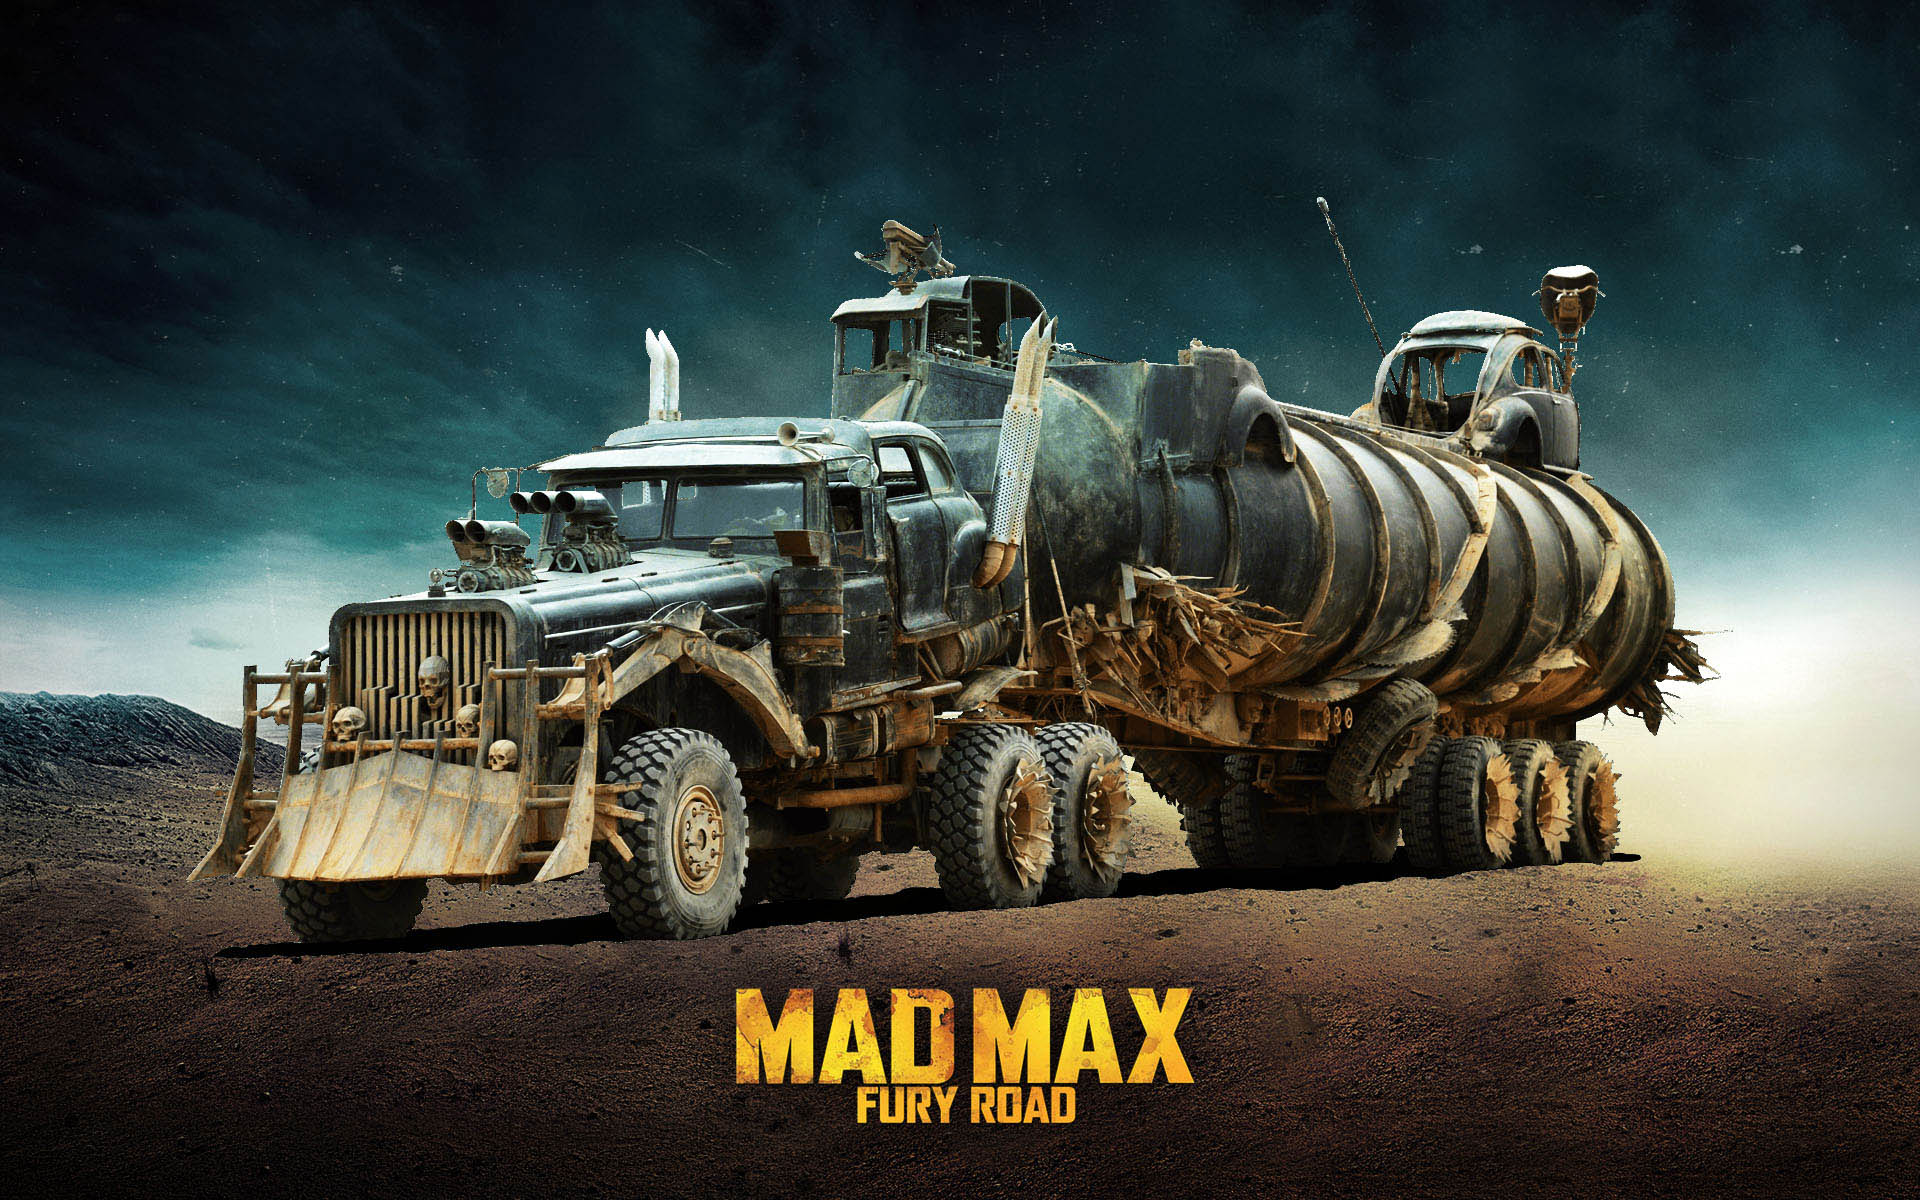 Off Road Cars Hd Wallpapers 16 Hd Mad Max Fury Road Movie Wallpapers